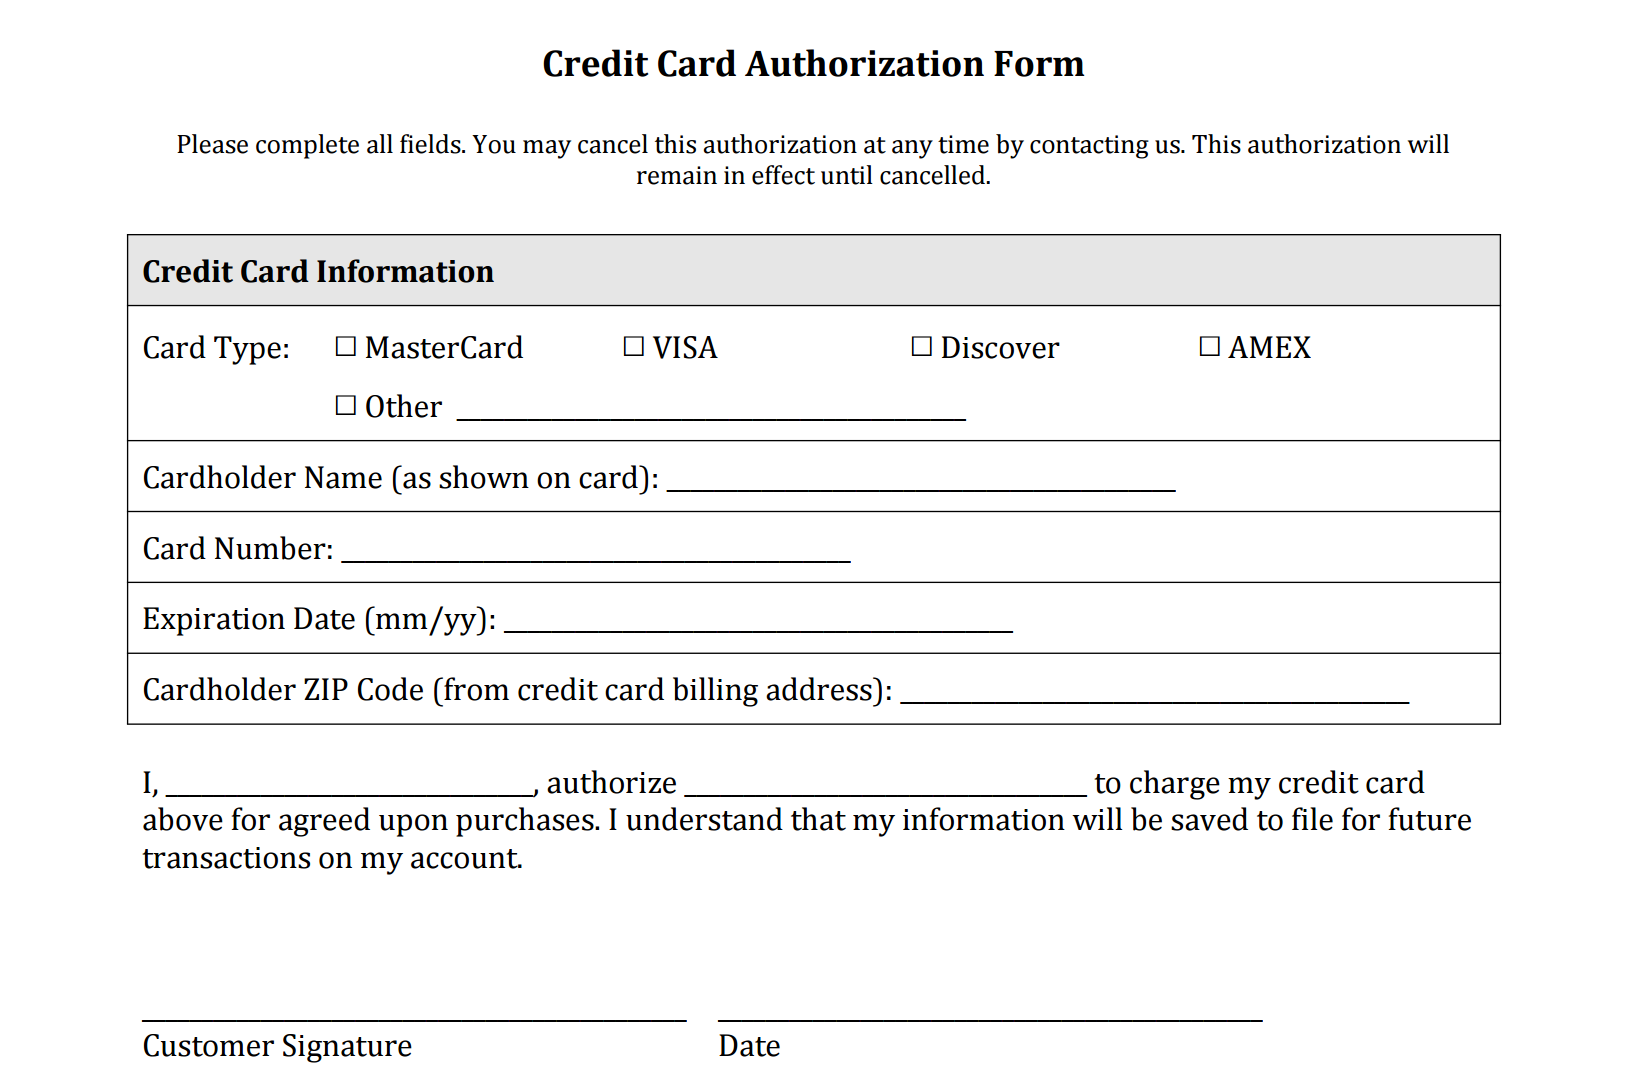 Credit Card Authorization Form Templates Download - Free business invoice templates word vapor store online